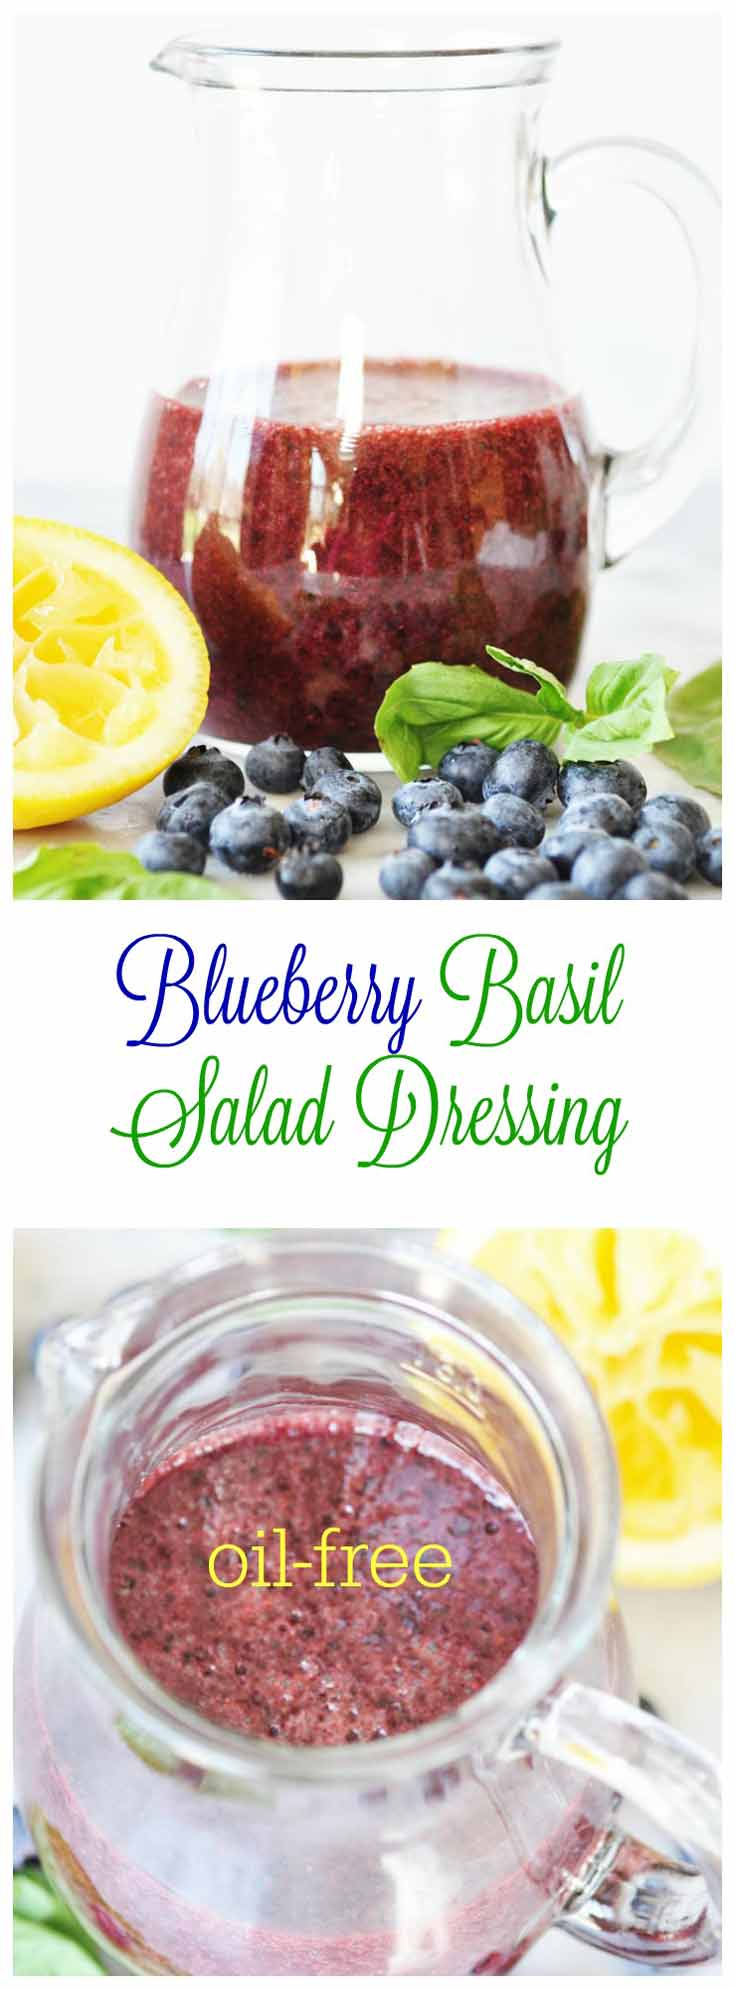 Blueberry Basil Salad Dressing - Veganosity